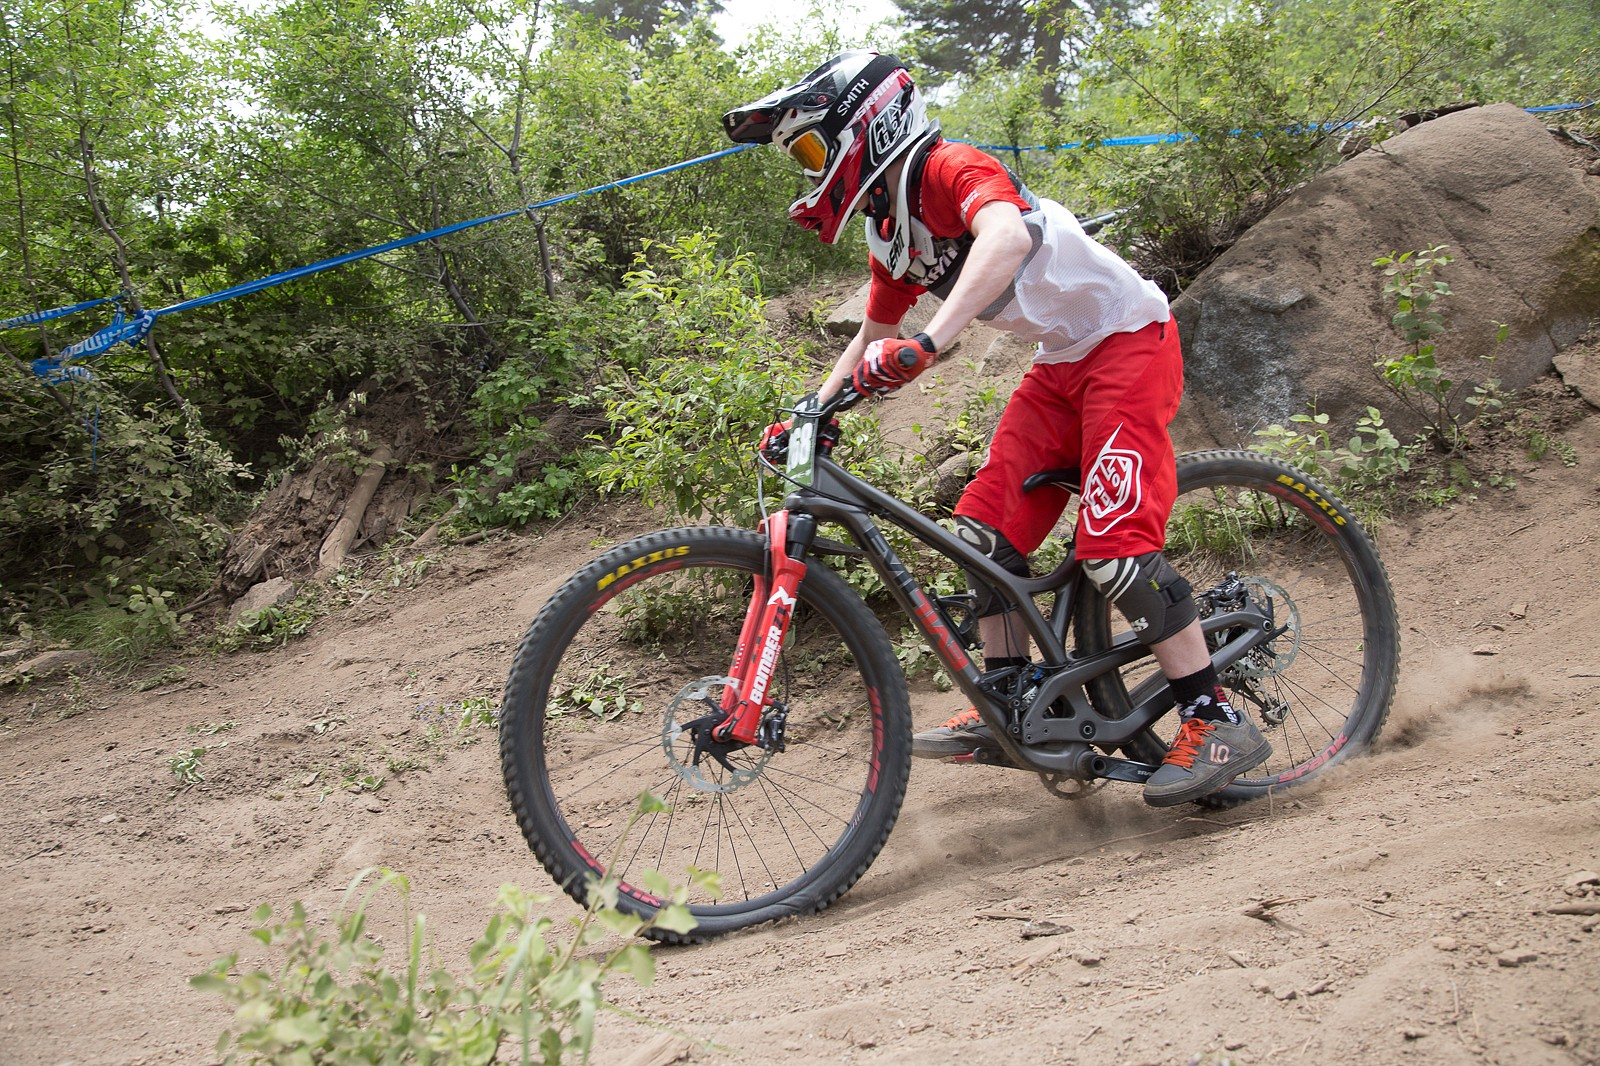 G-Out Project, Tamarack #USDH National-4 - G-Out Project - Tamarack NW Cup / #USDH - Mountain Biking Pictures - Vital MTB